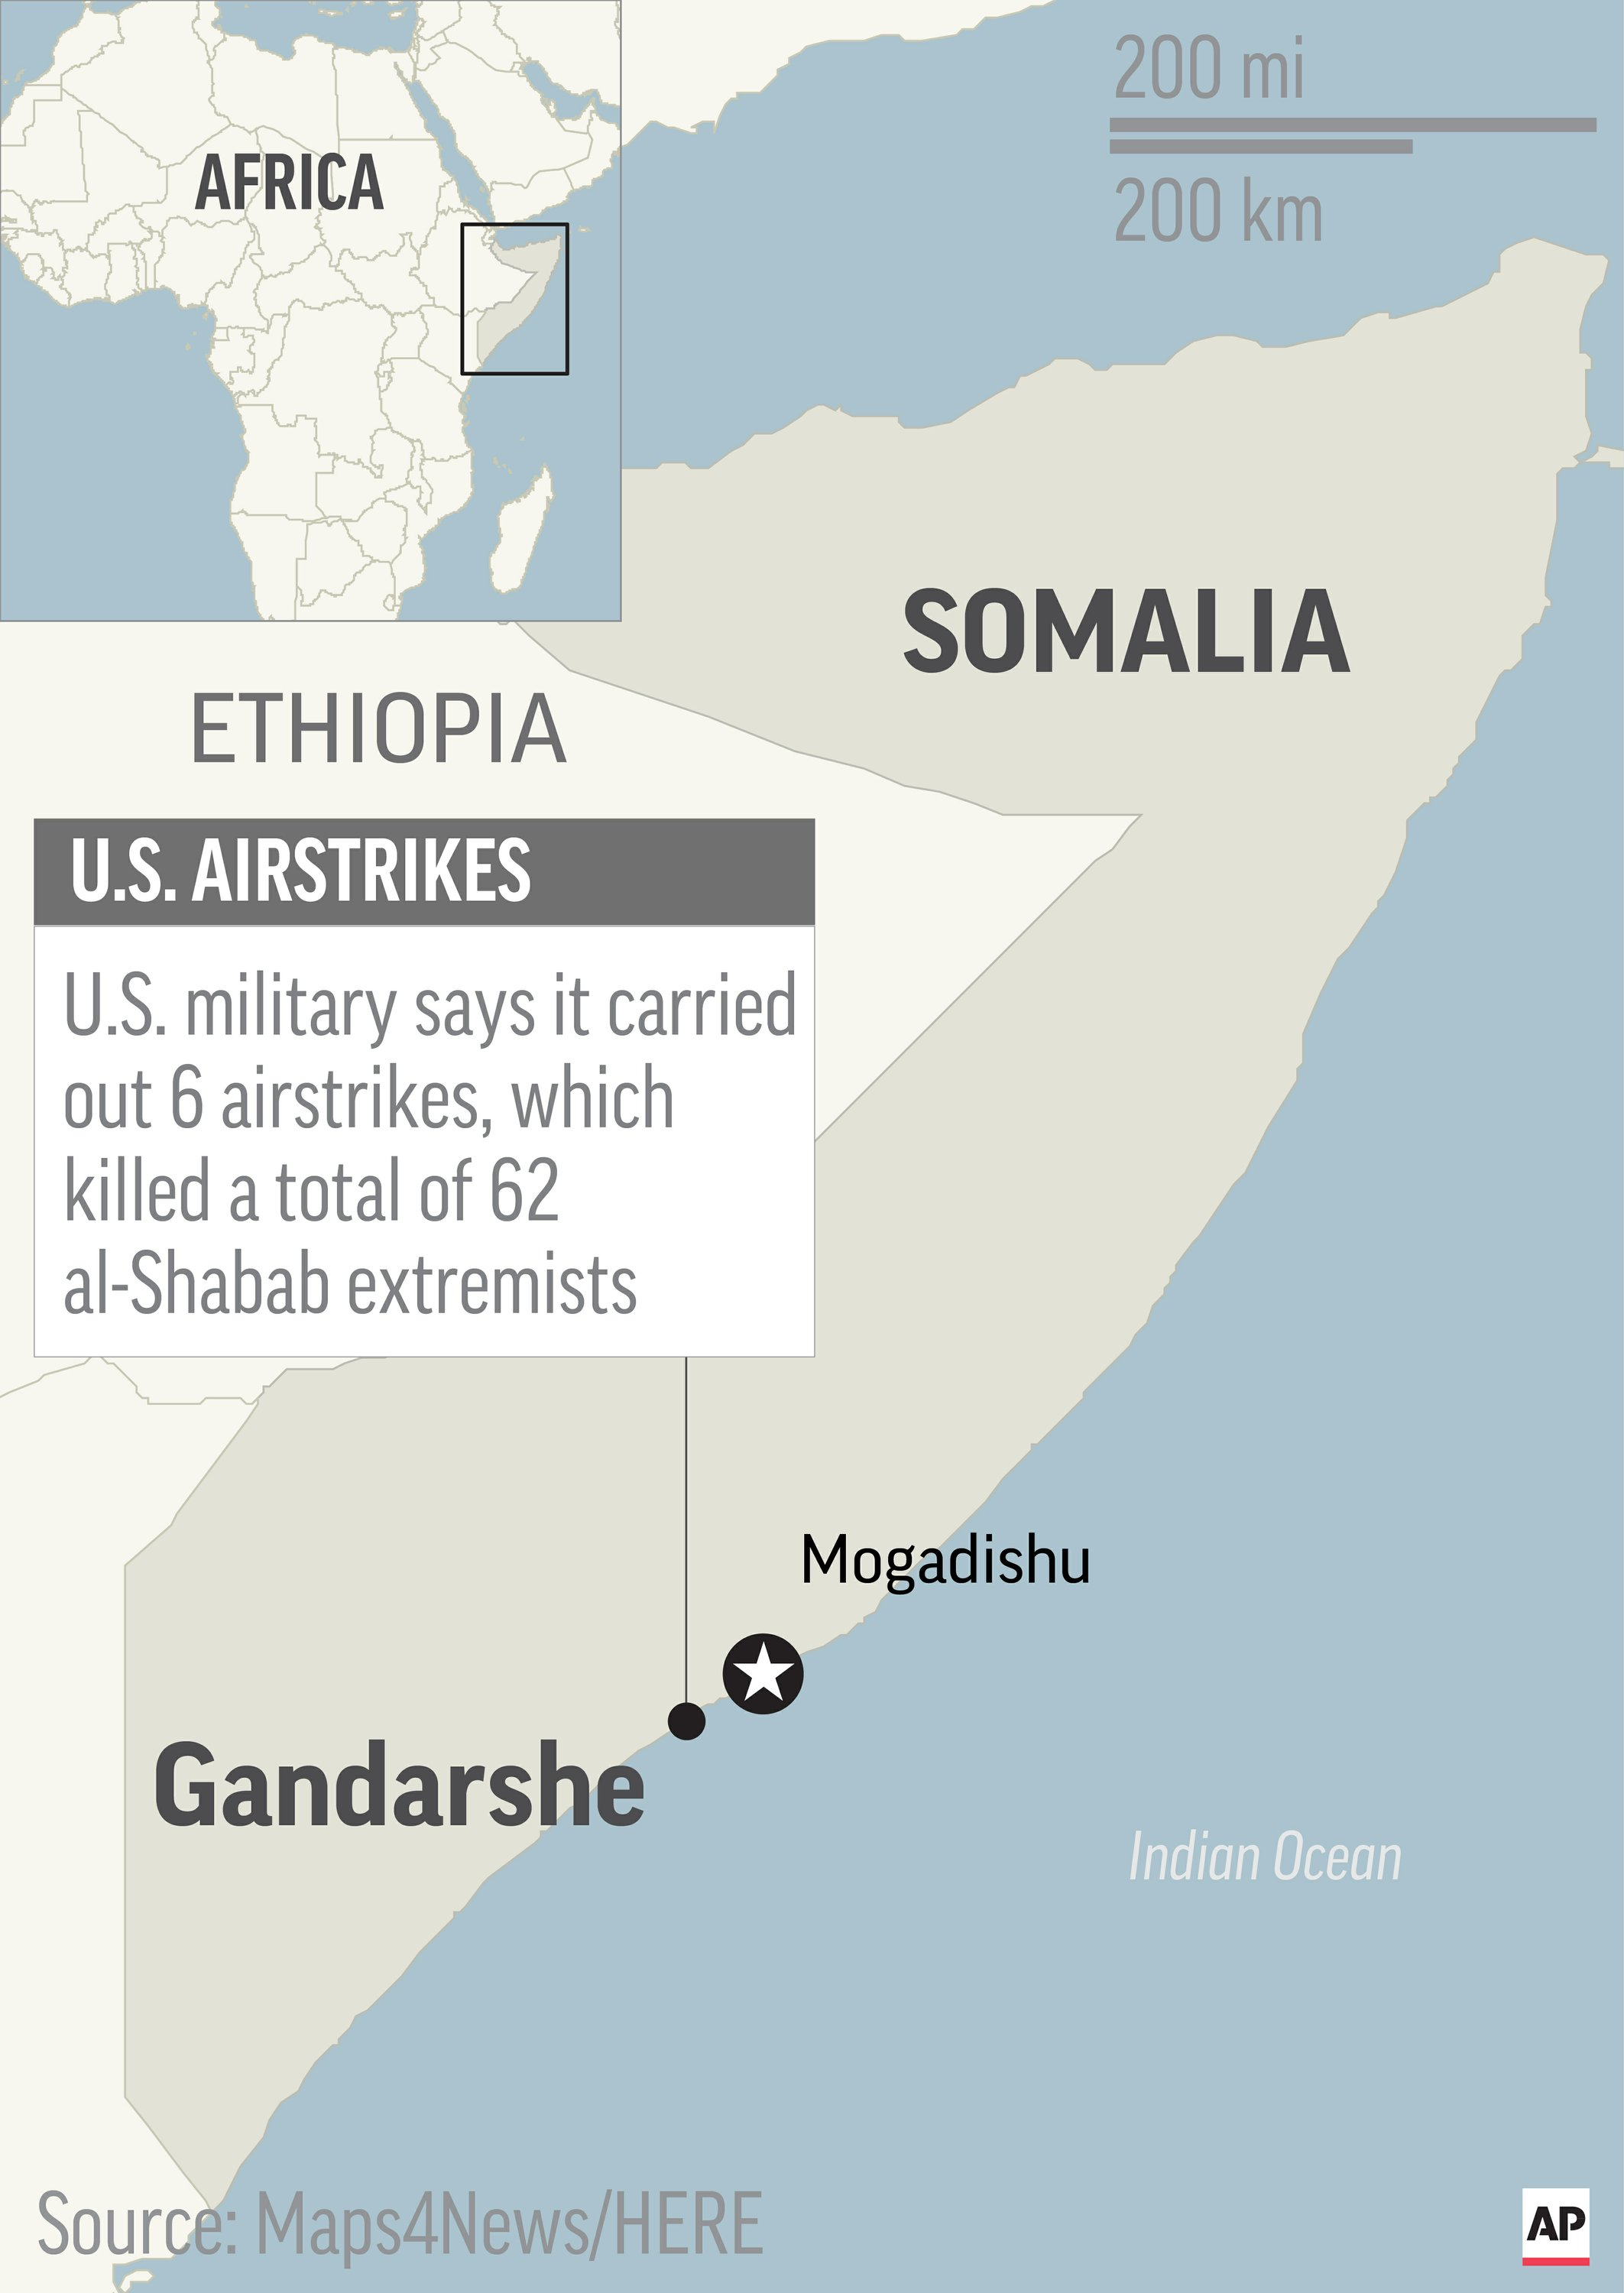 US conducts 6 airstrikes against Somalia extremists, 62 dead